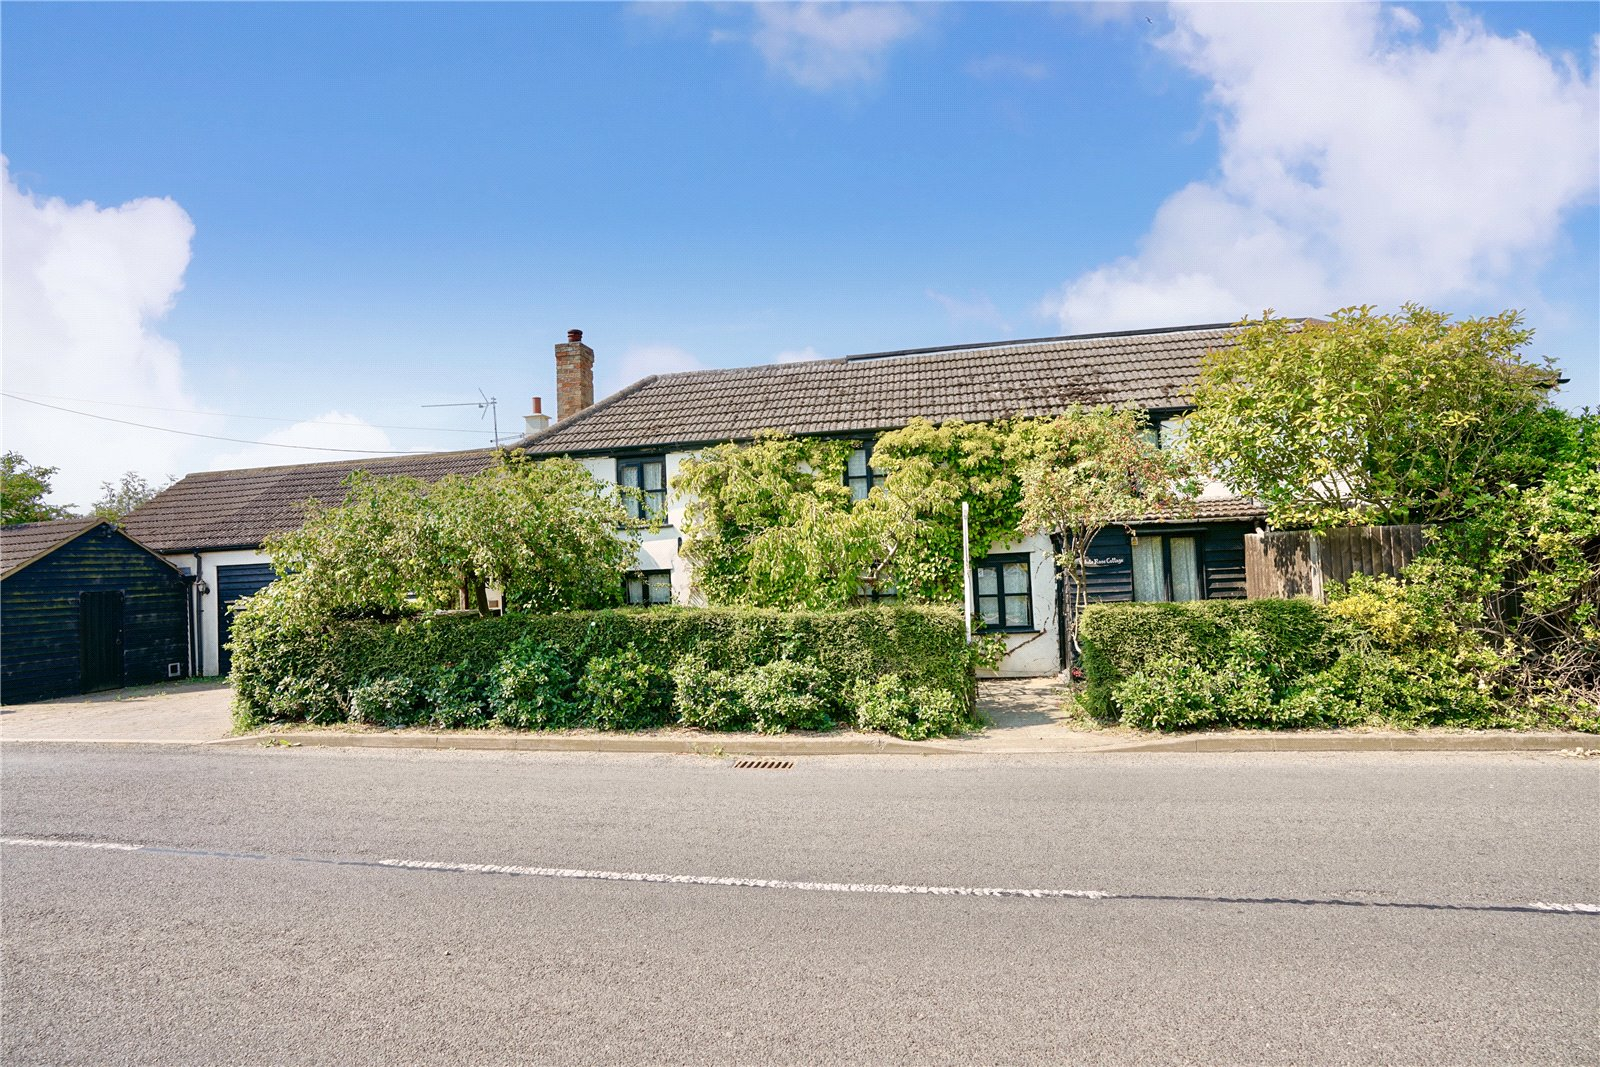 5 bed house for sale in Little Staughton, MK44 2BY, MK44